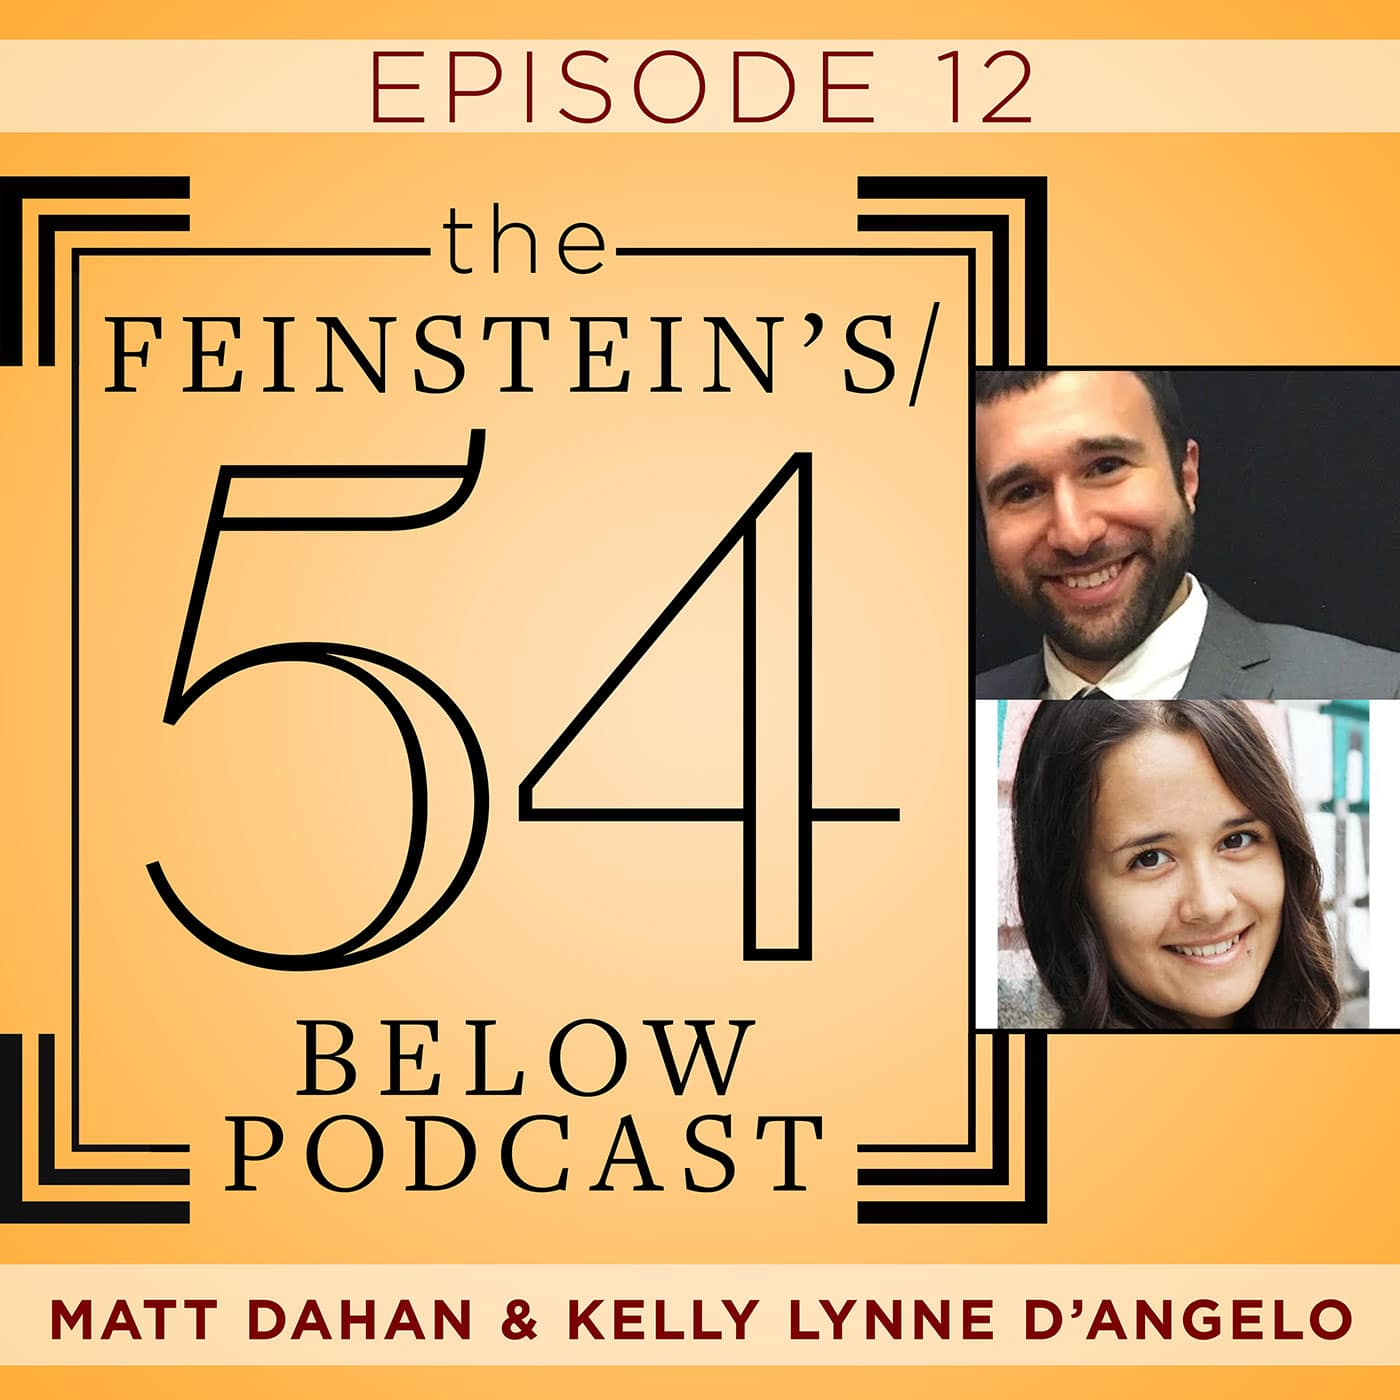 The Feinstein's/54 Below Podcast Episode 12 Matt Dahan, Kelly Lynne D'angelo